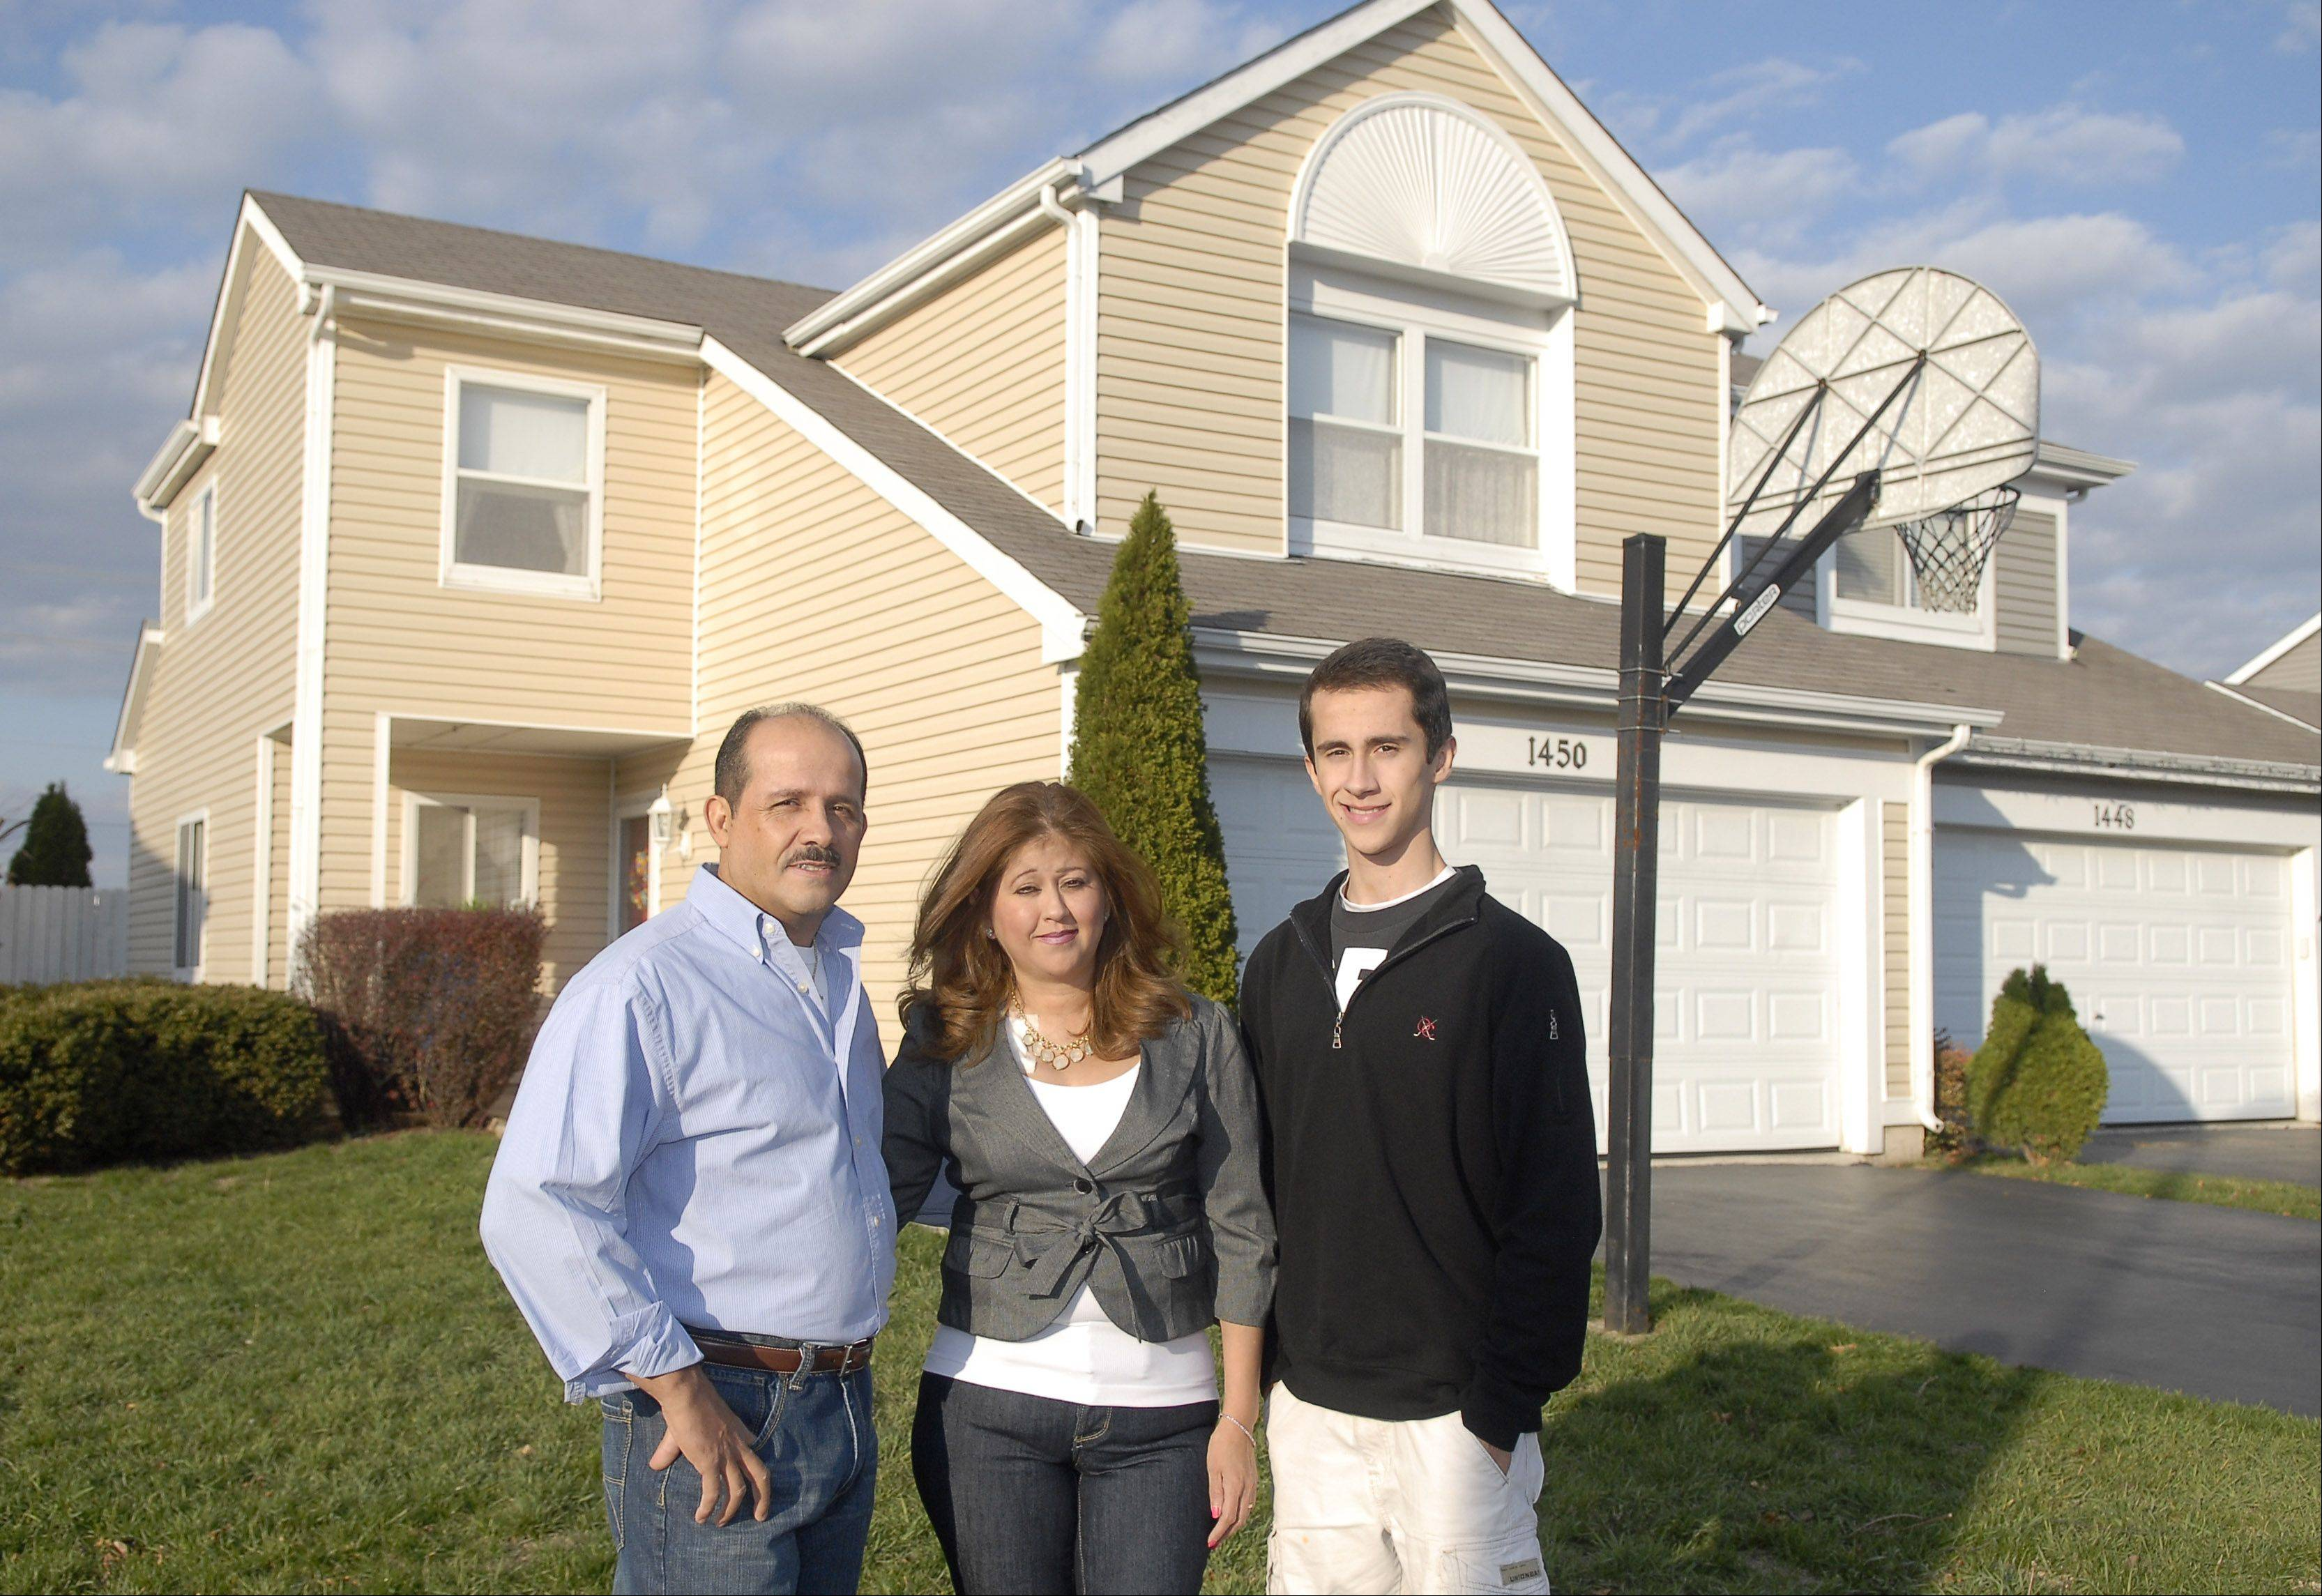 Evelio Villanueva, his wife, Irma, and son, Tavo, 16, in their South Elgin home. Villaneuva got a loan modification on his mortgage with the help of Neighborhood Housing Services of the Fox Valley. He says it wouldn't have been possible without the help of the organization.